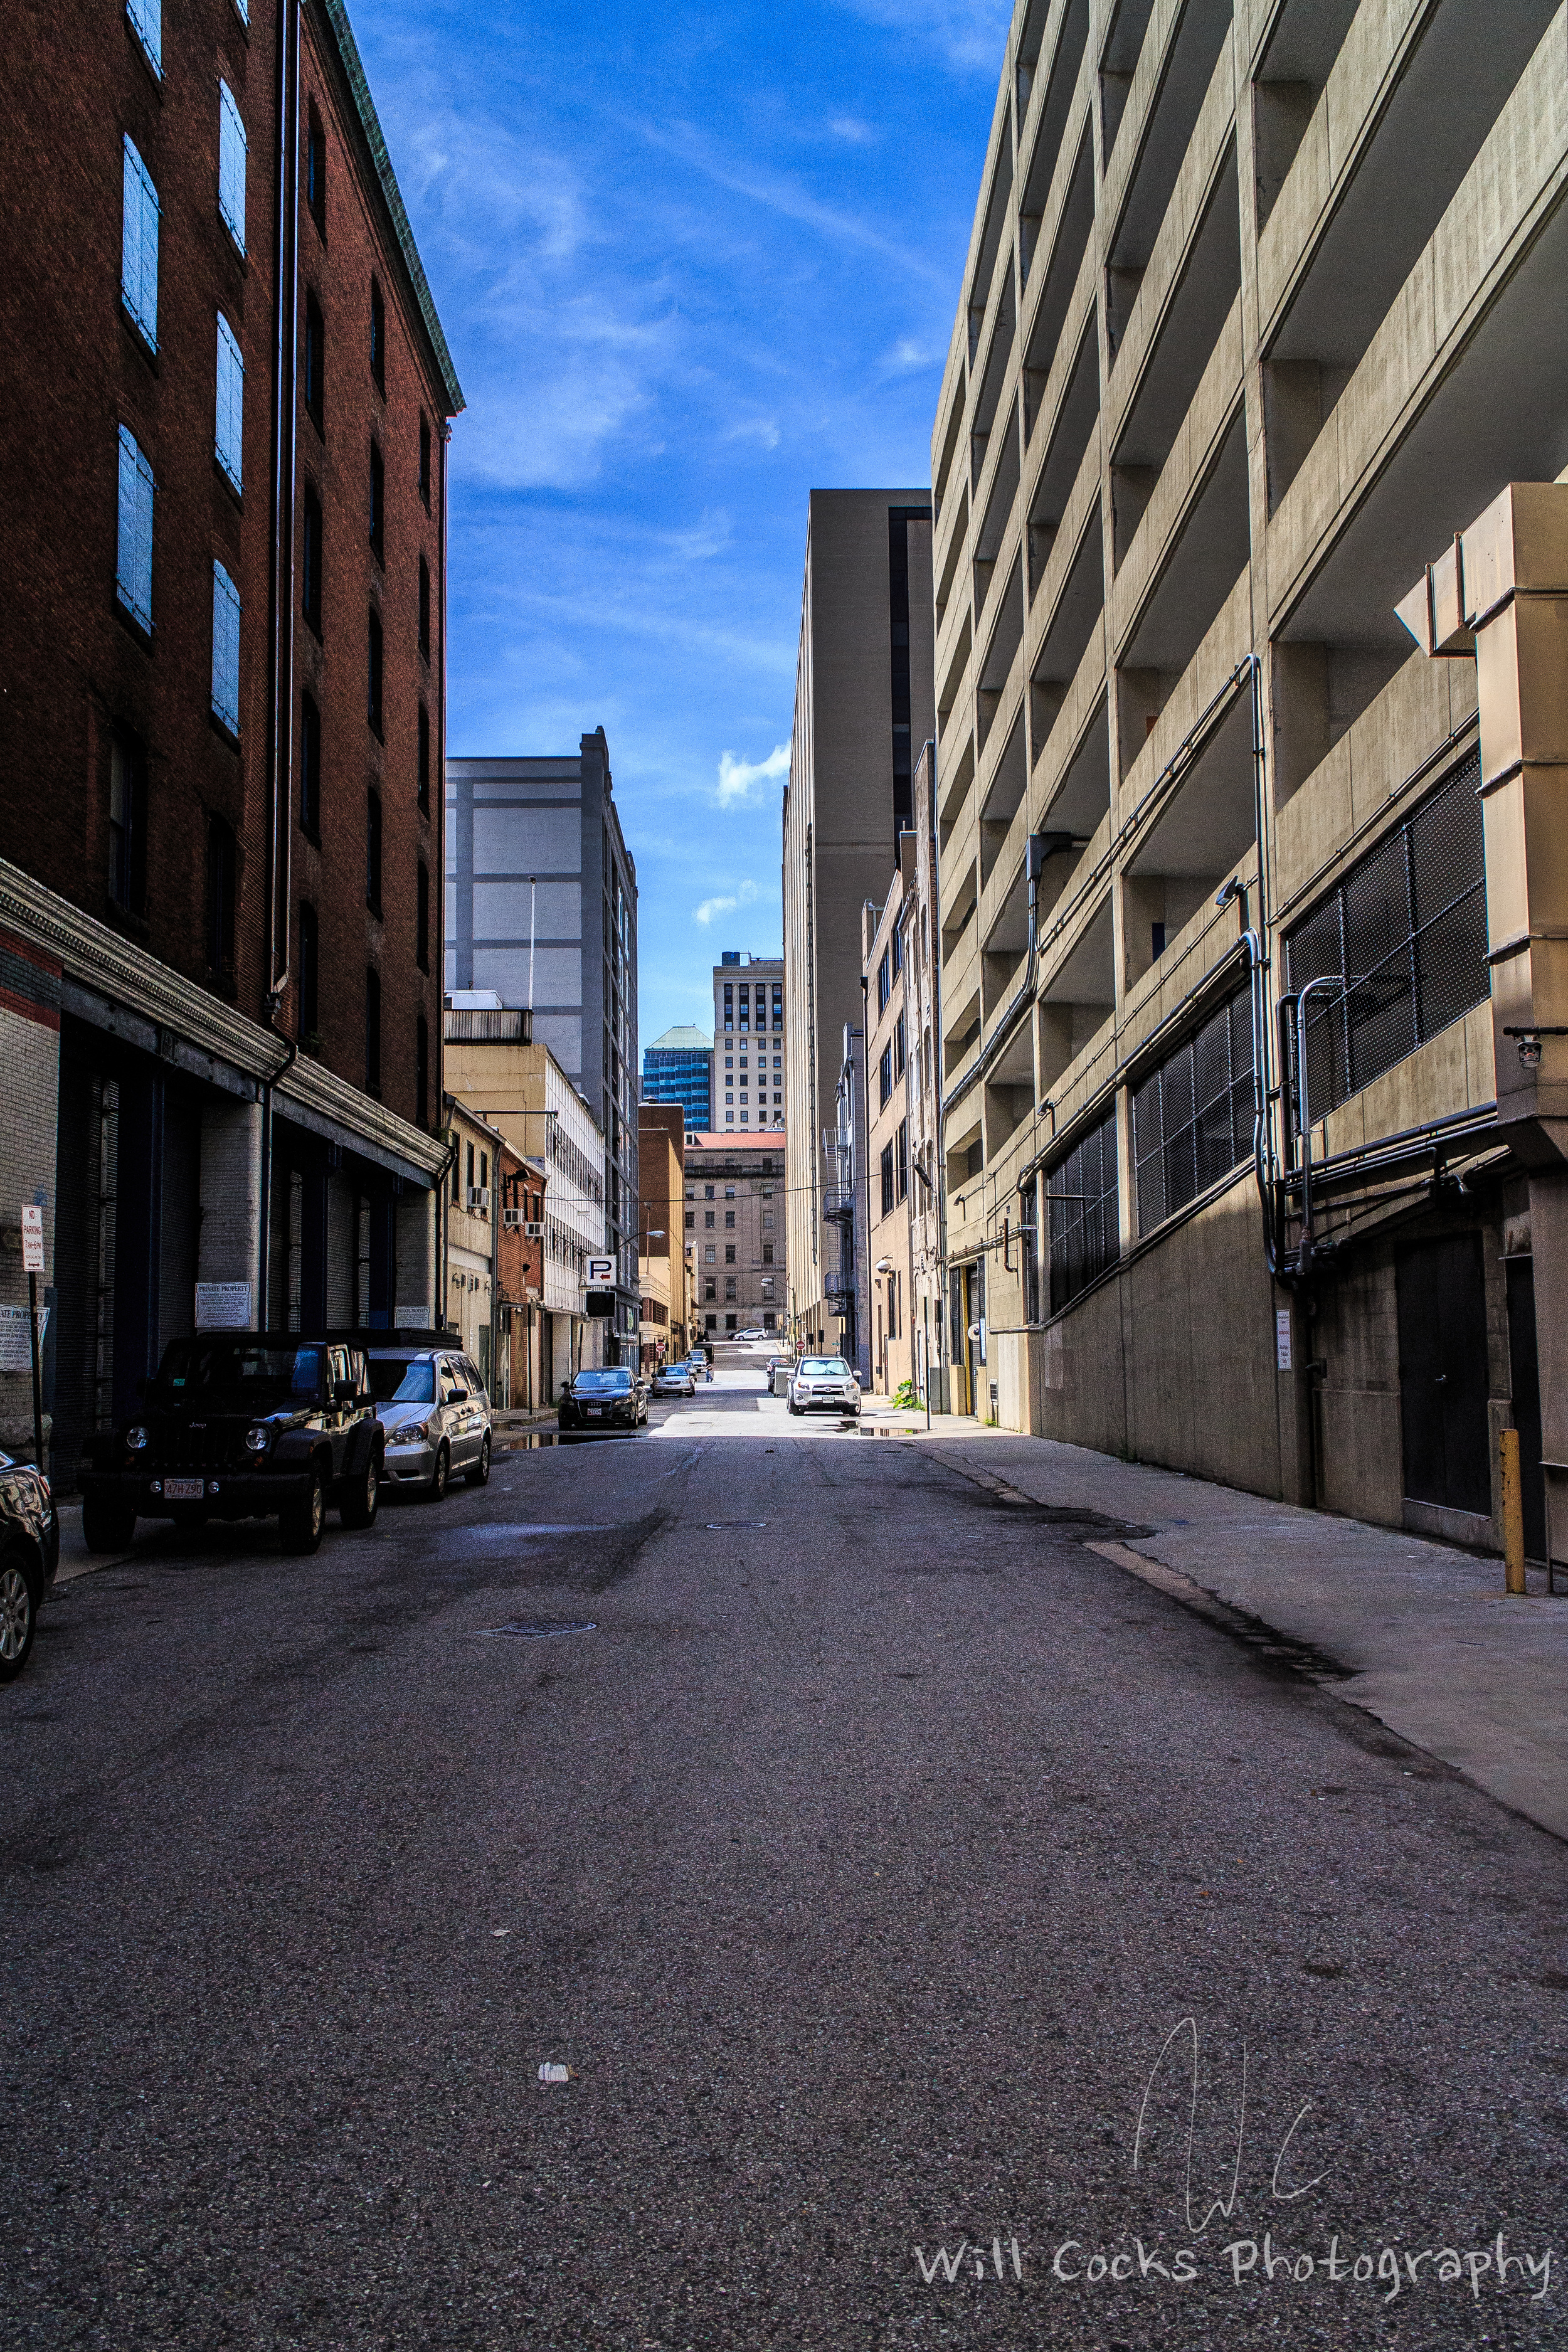 An alley in Baltimore